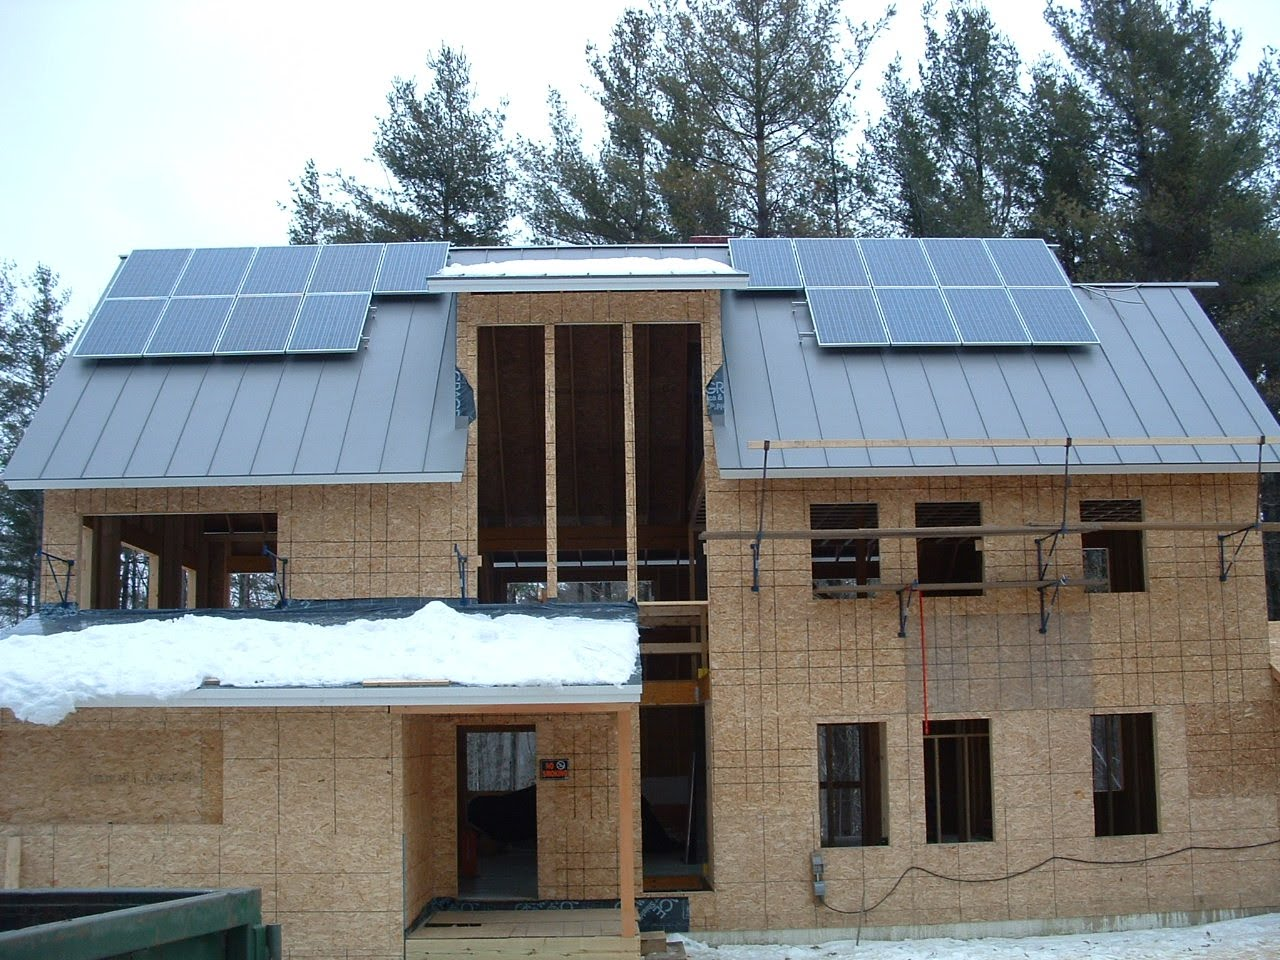 Captivating Attaching Solar Panels To A Metal Roof